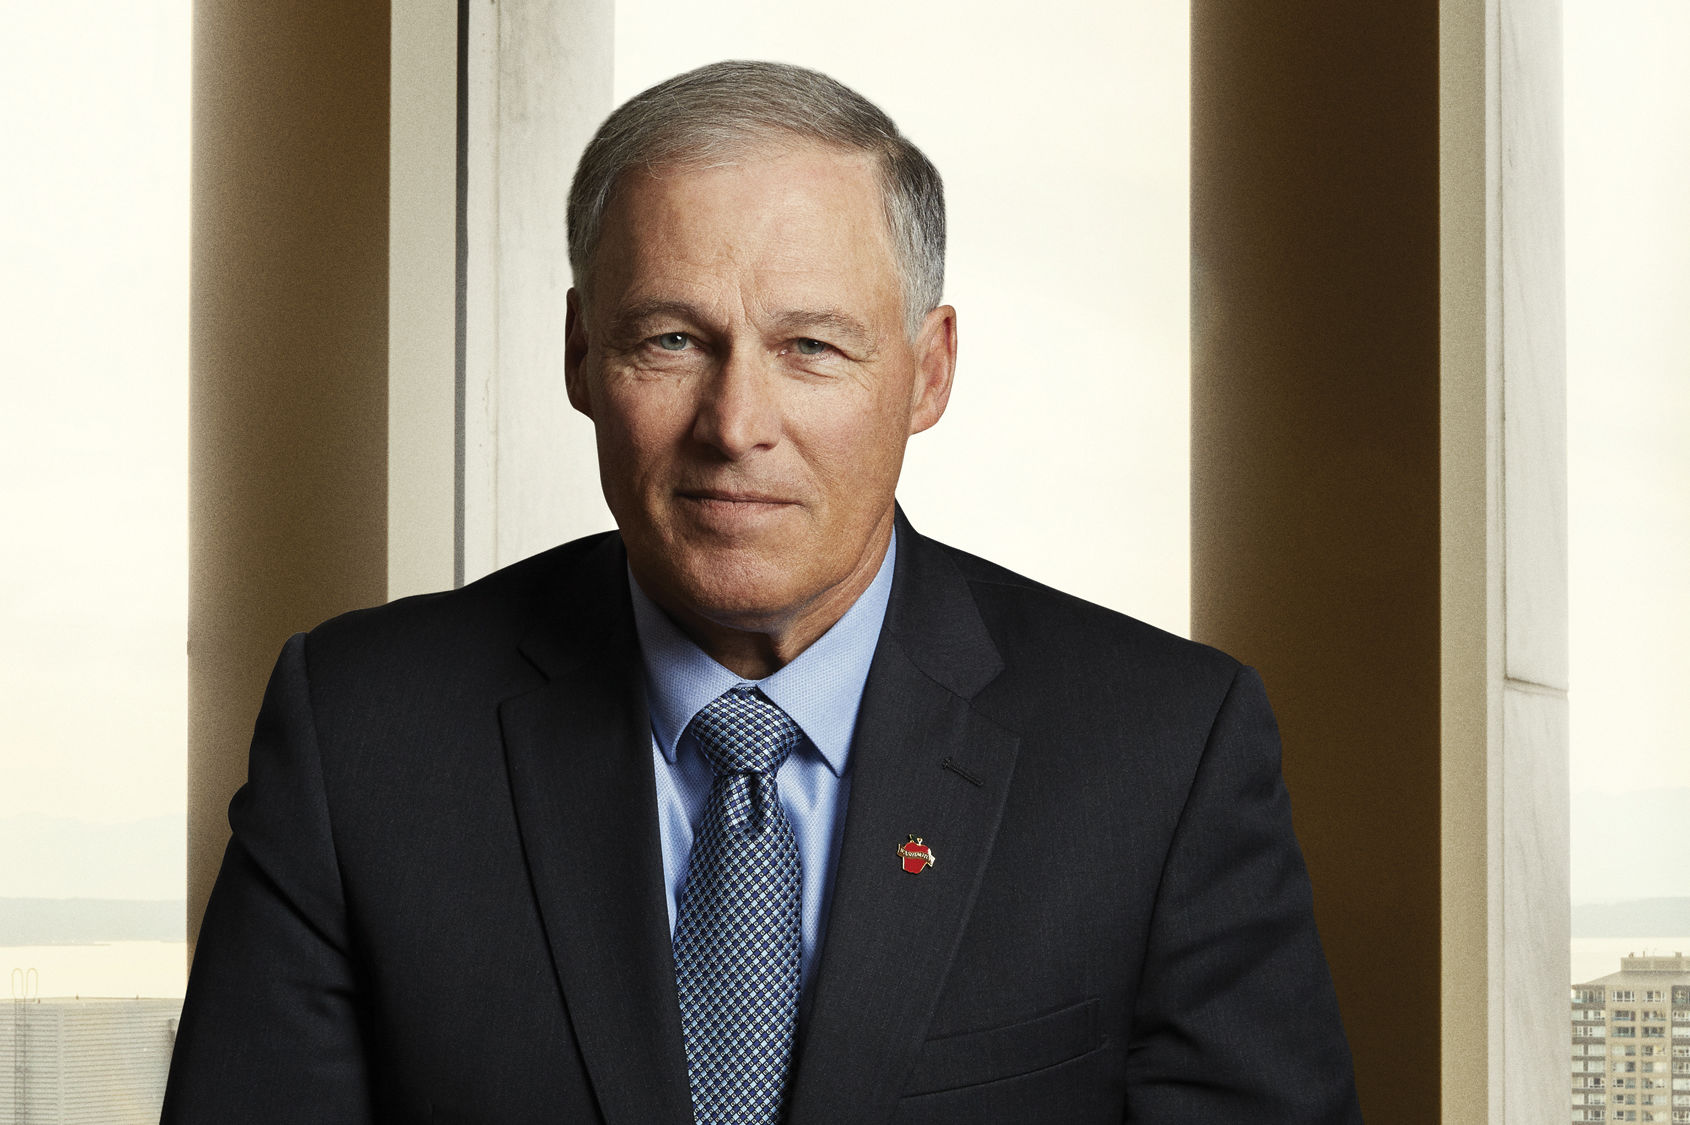 Jay inslee quote 1 25 ovjday